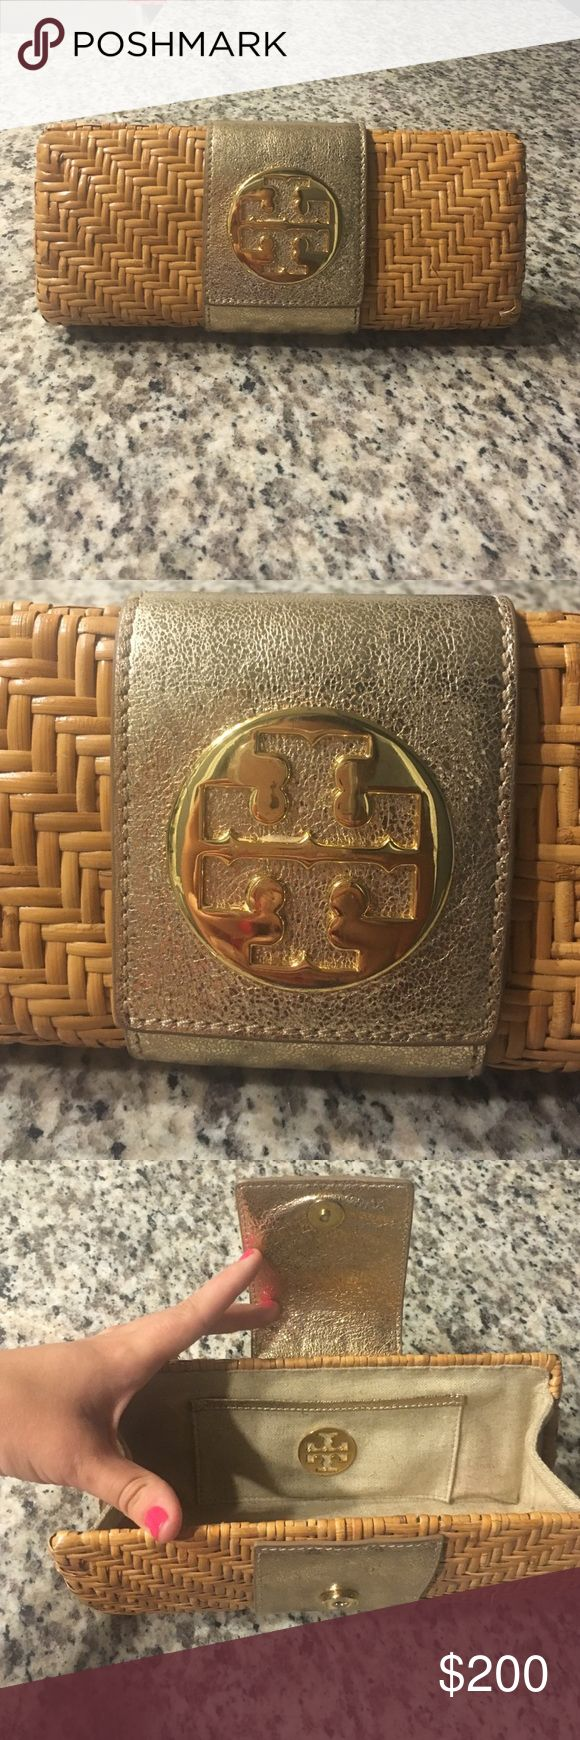 Tory Burch Rattan Clutch gold clutch used a few times in good condition only has a couple pink lipstick stains inside the clutch Tory Burch Bags Clutches & Wristlets